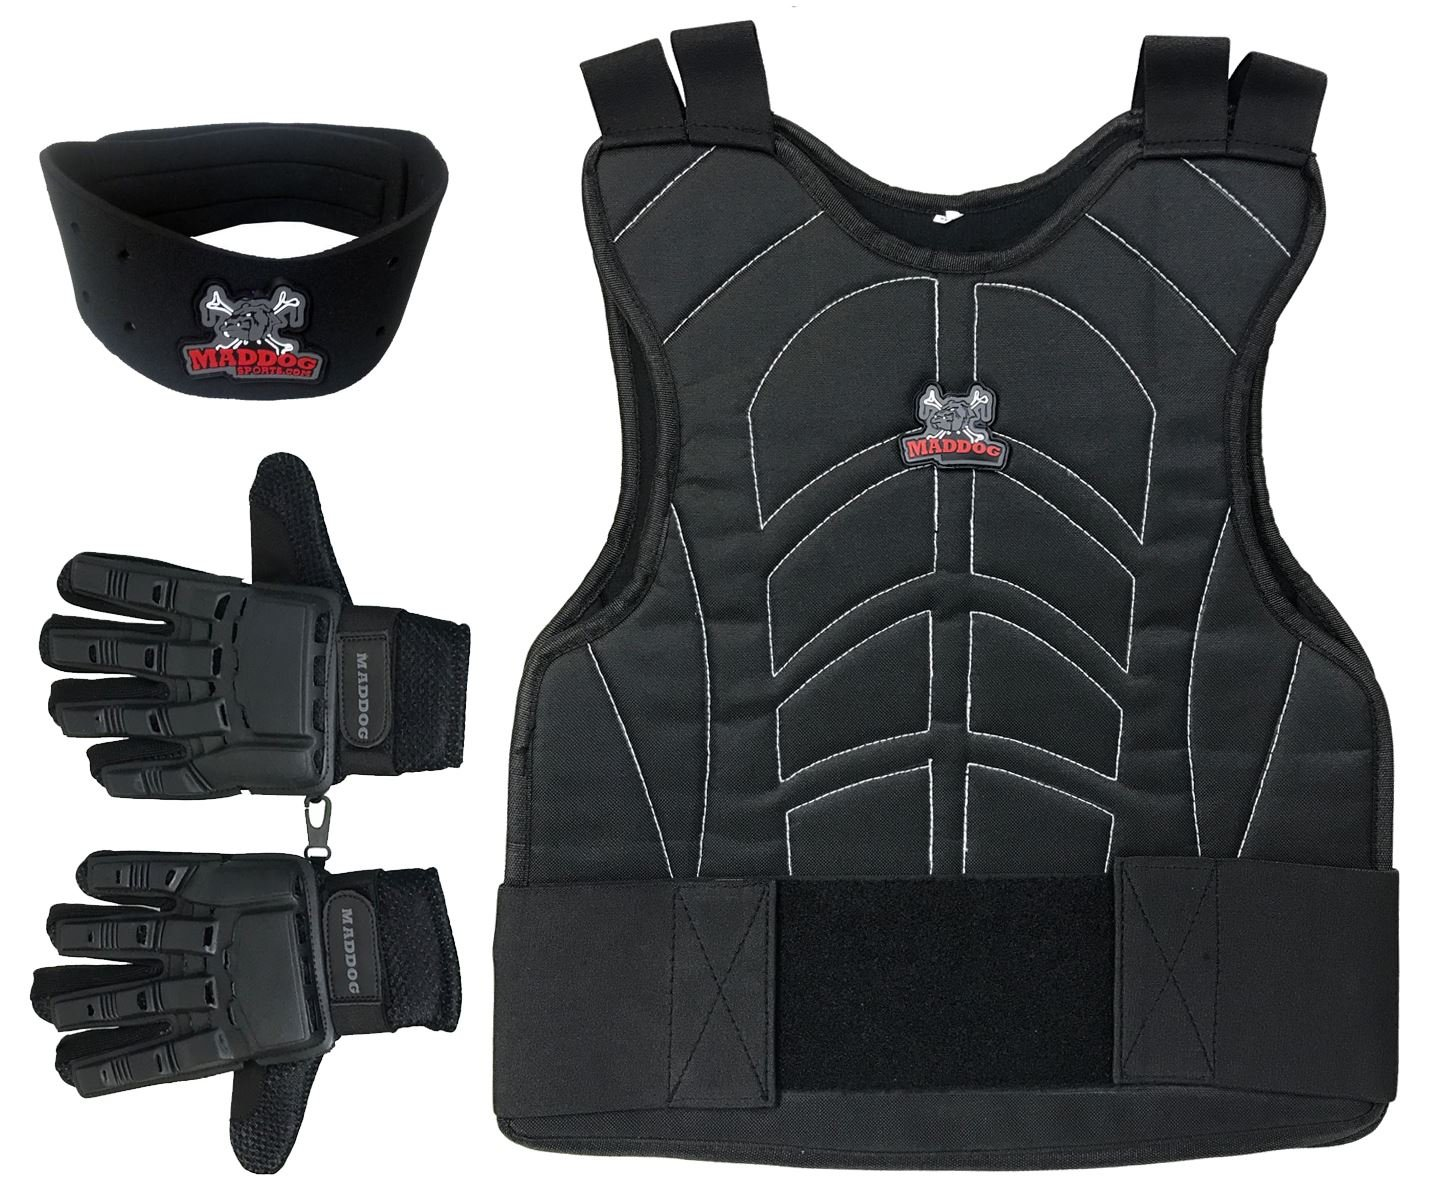 Maddog Sports Padded Chest Protector, Full Finger Tactical Gloves, Neck Protector Combo Package - Black - Large/X-Large by MAddog